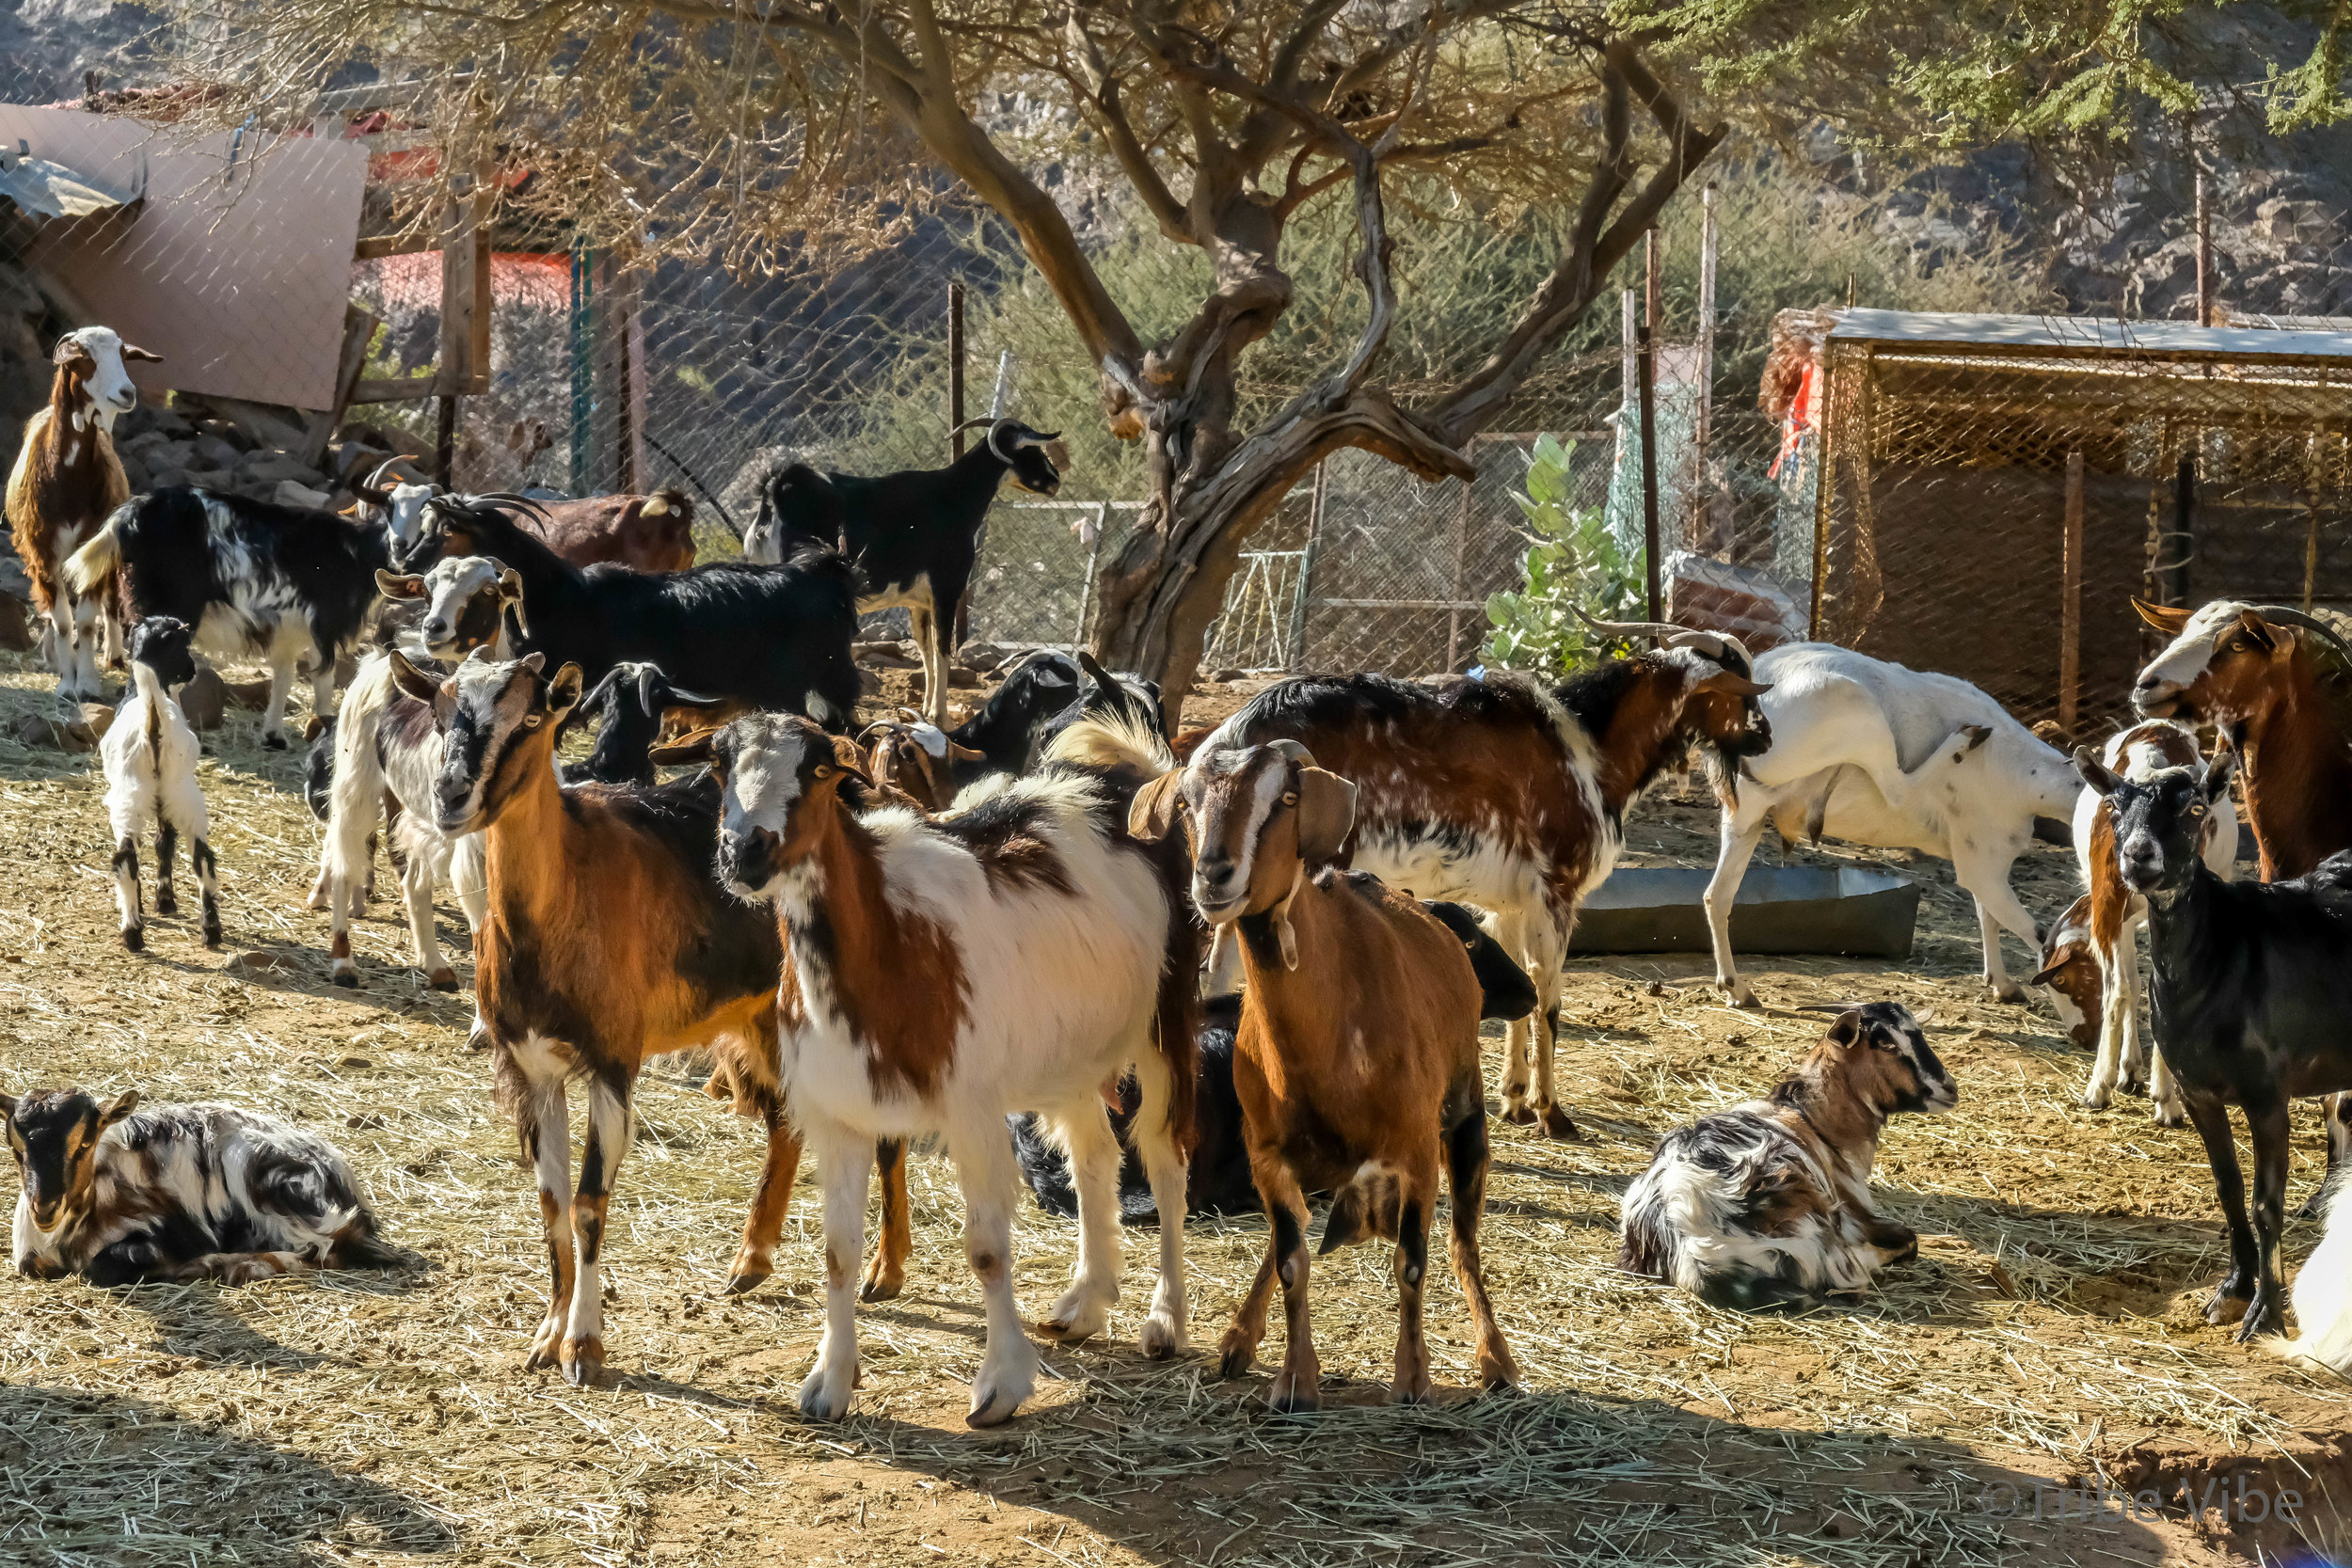 goats at the camel farm. Hiking in the UAE8.jpg